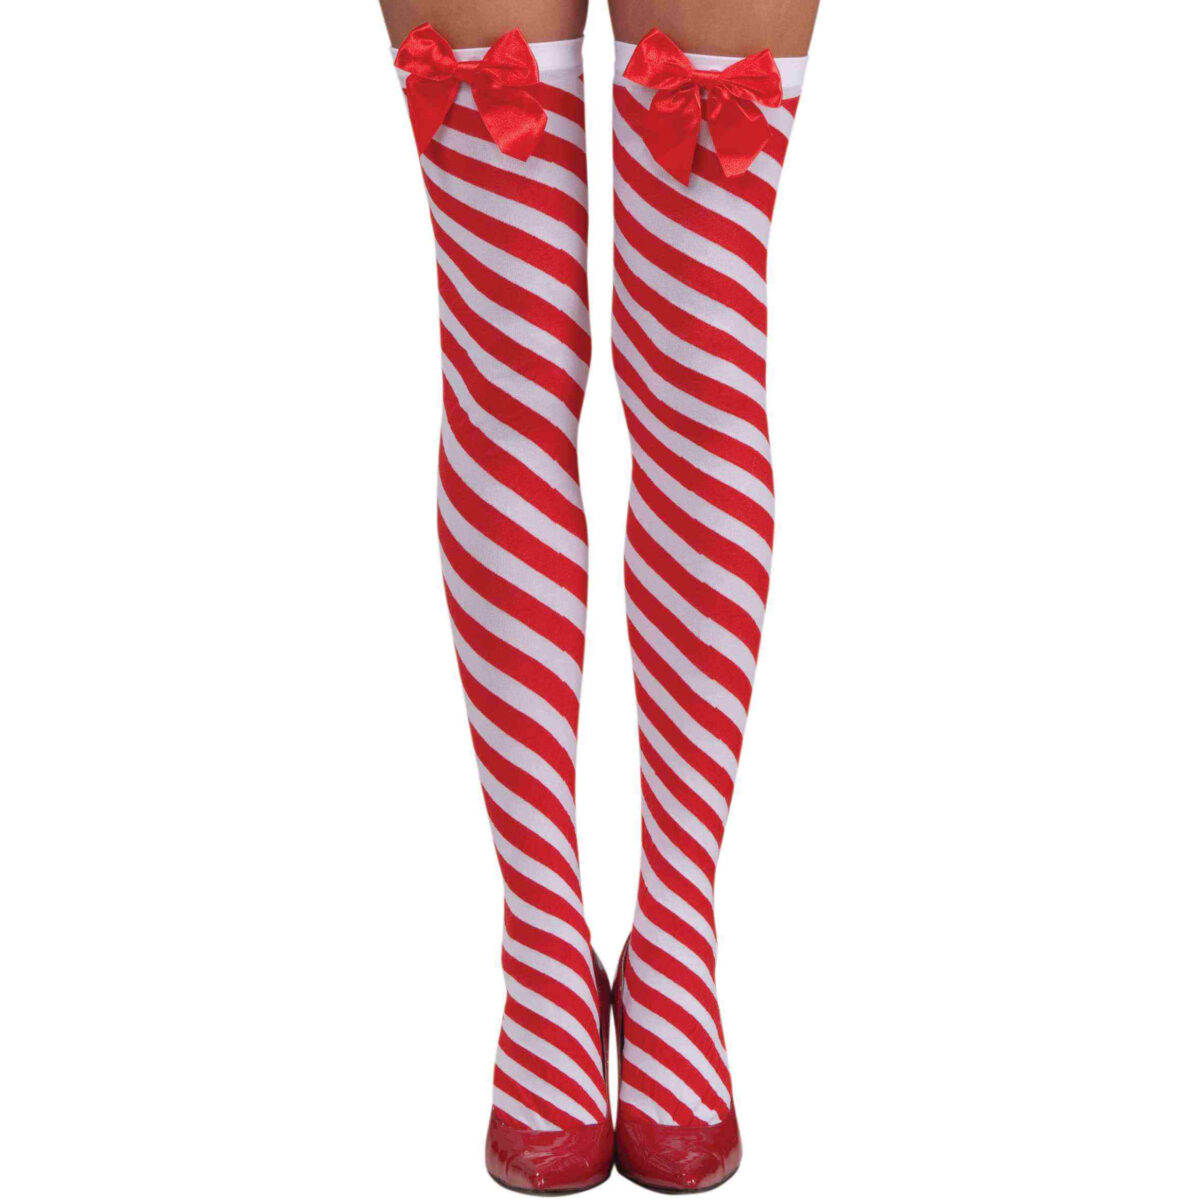 Candy Cane Thigh Highs